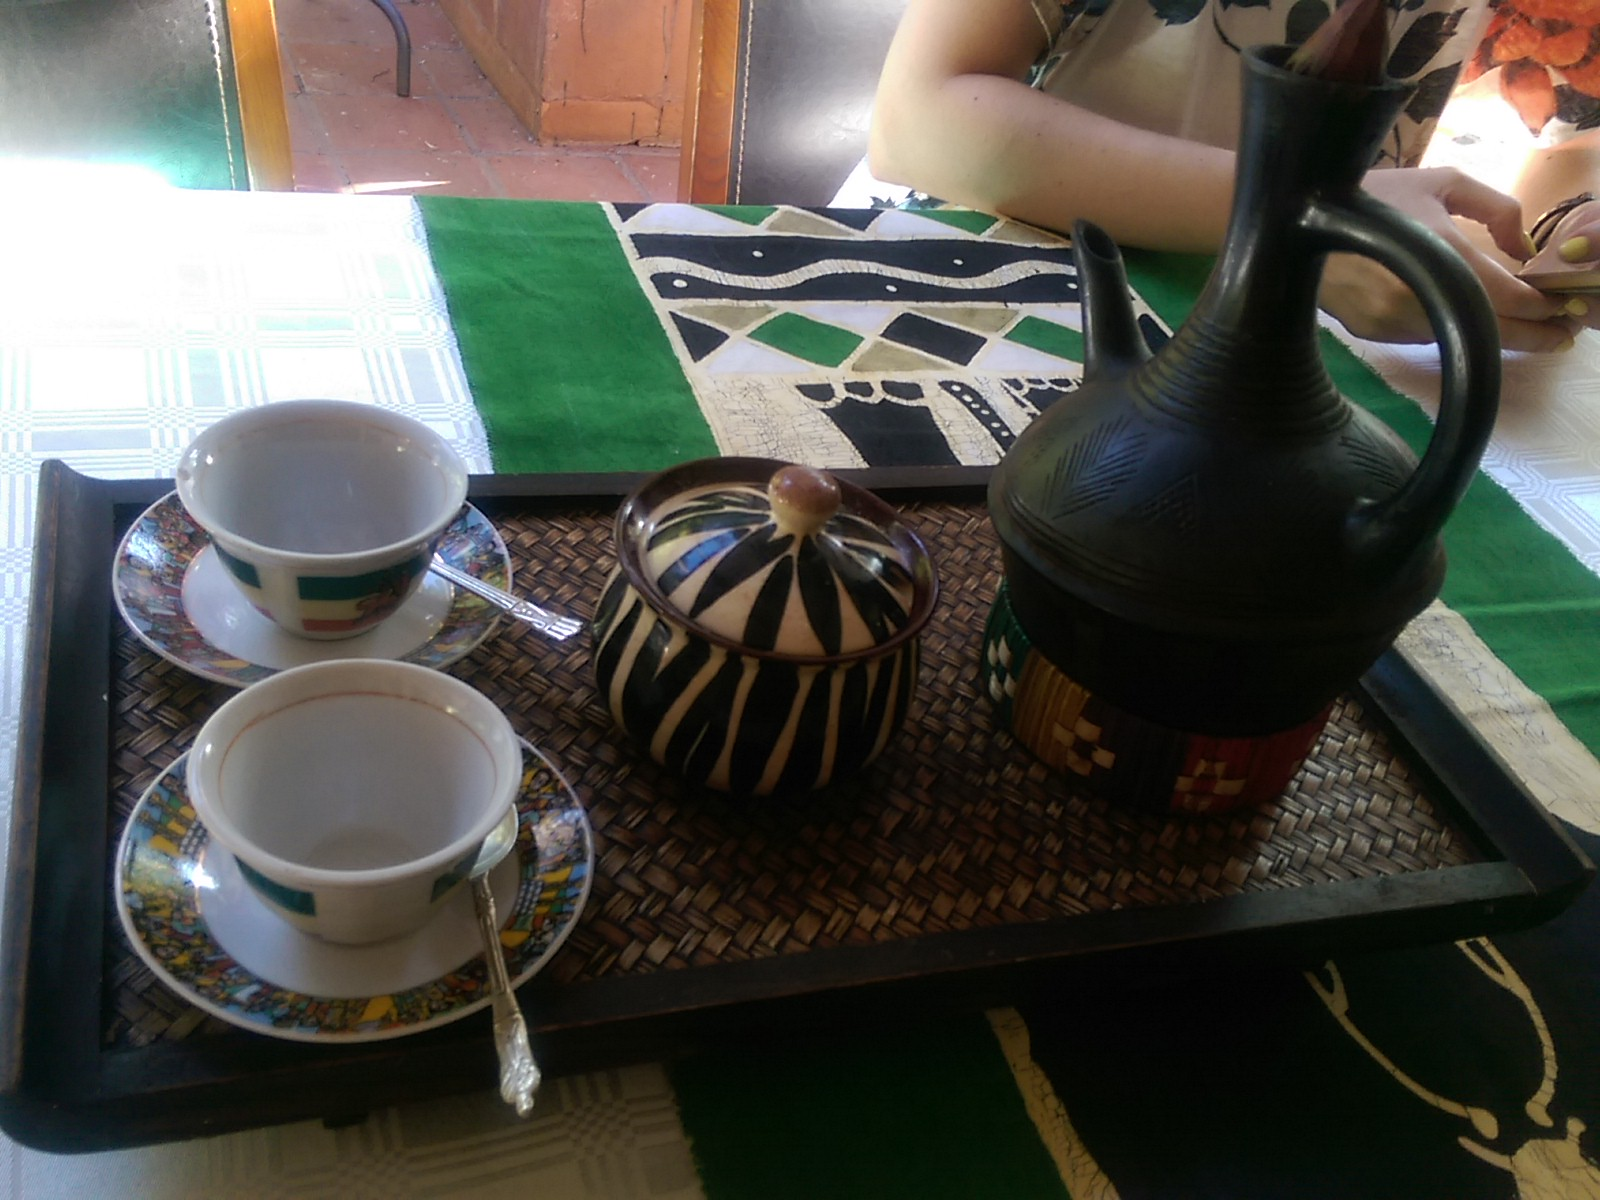 A tray with two small white cups, a stripey patterned sugar pot and a black spouted coffee pot